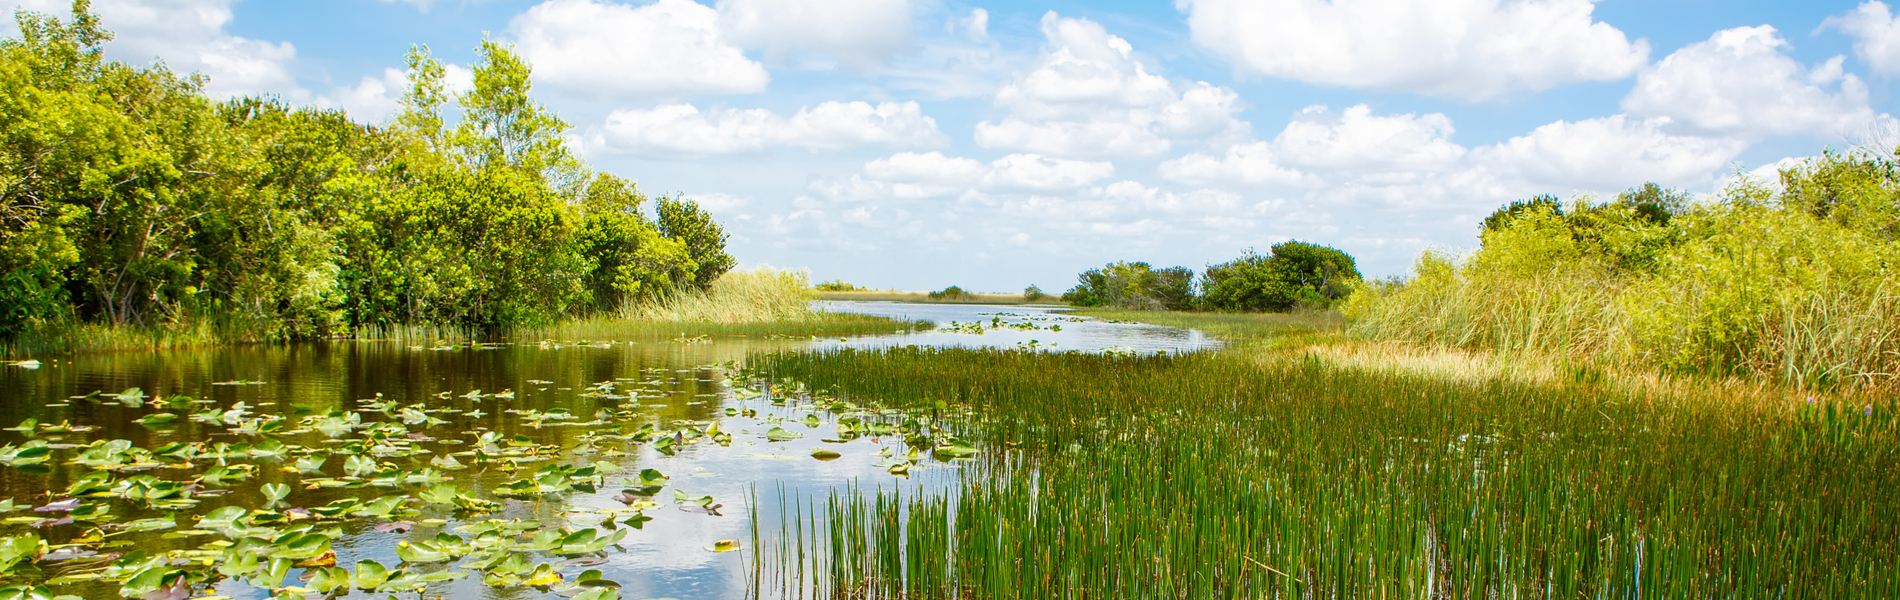 The Importance of Florida Wetlands